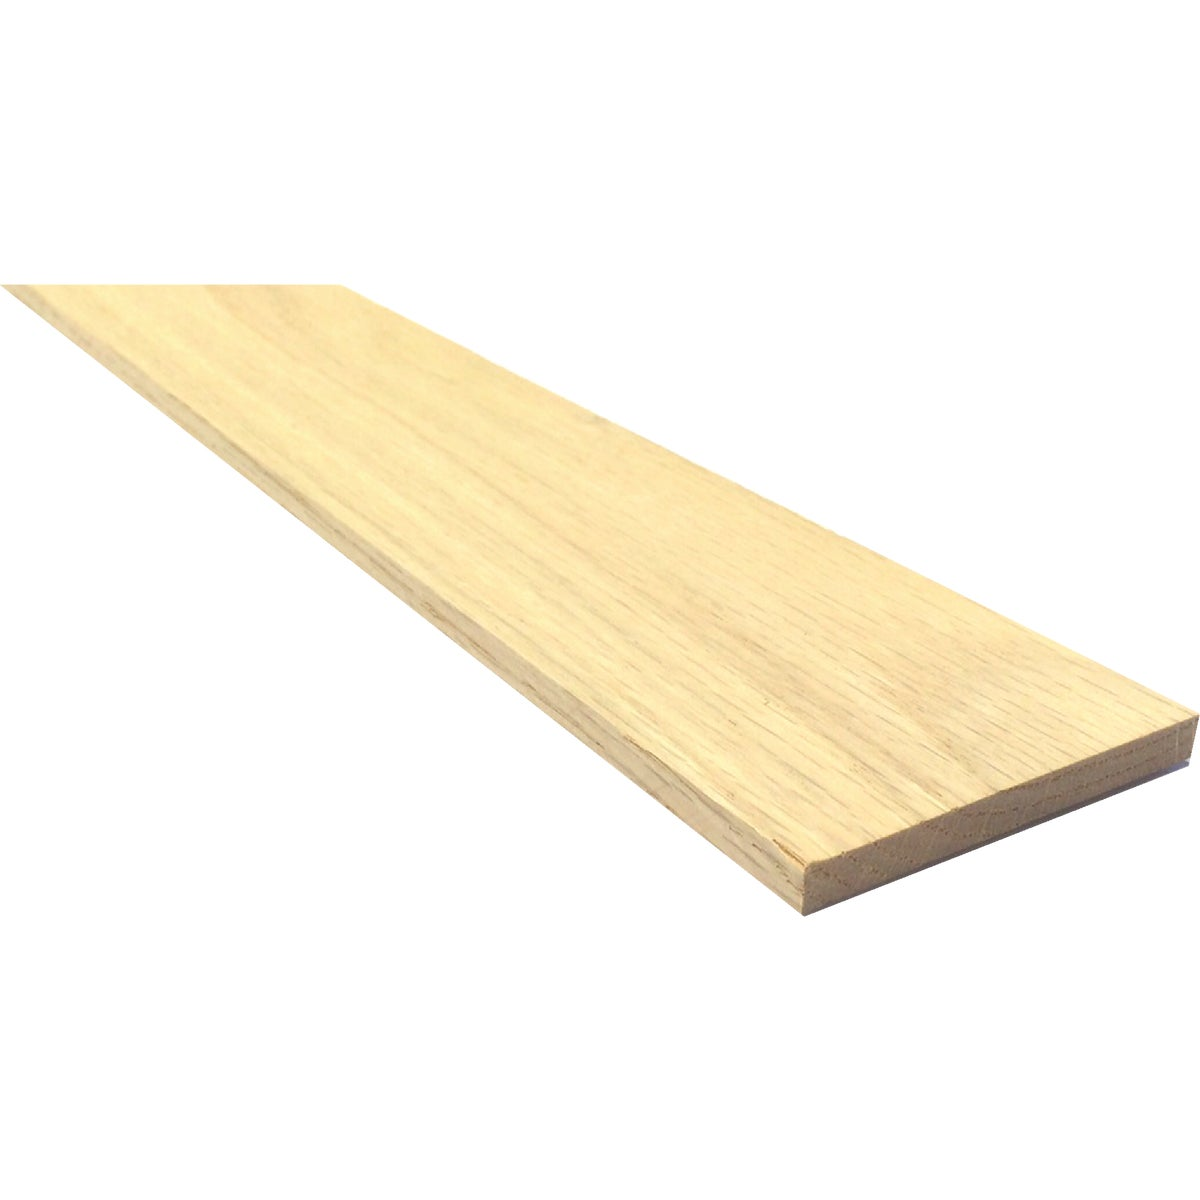 "1/4X4""X2' OAK BOARD - PB19506 by Waddell Mfg Company"